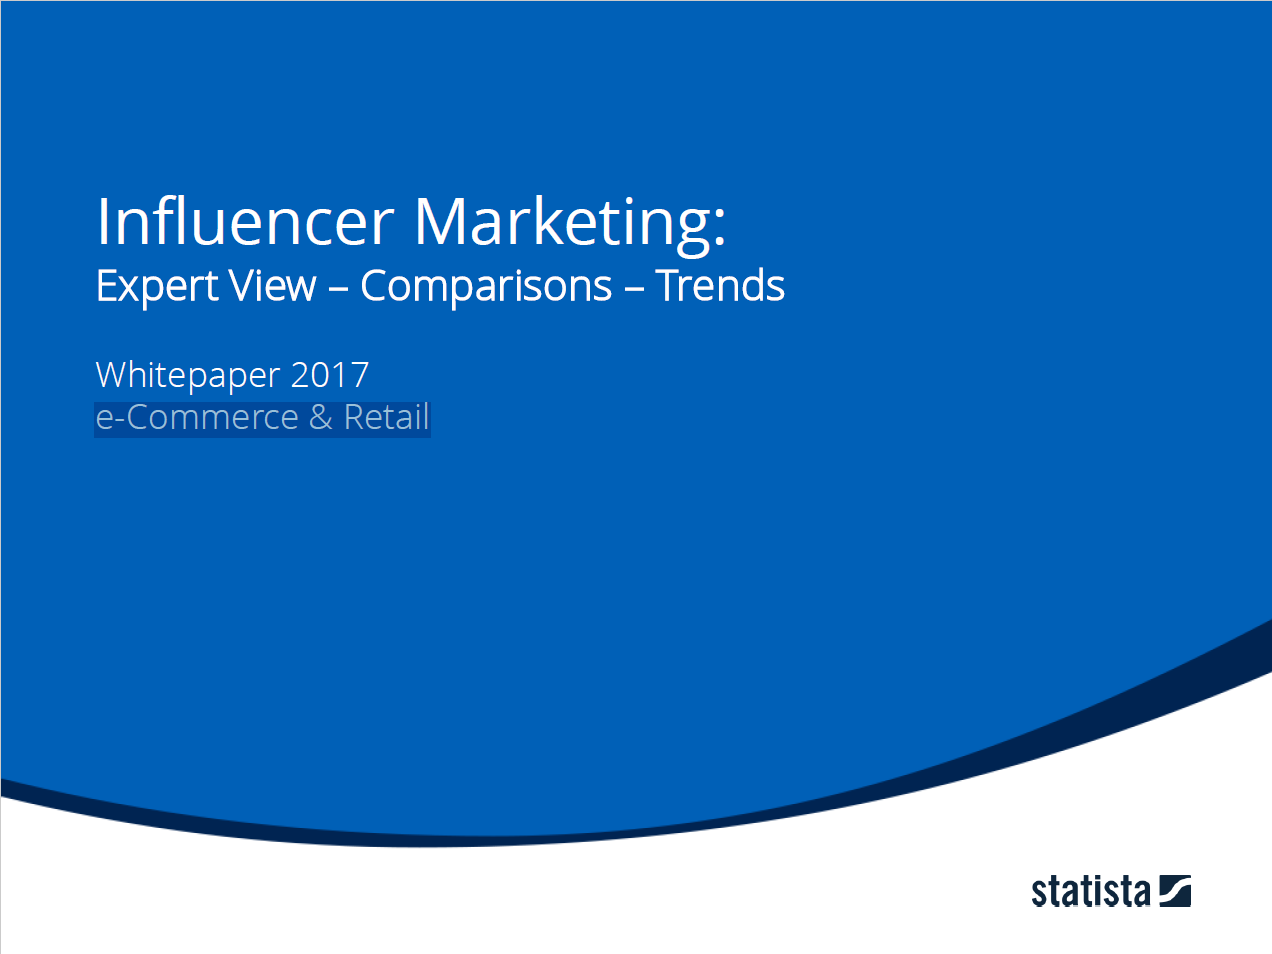 Influencer Marketing: Expert View – Comparisons – Trends